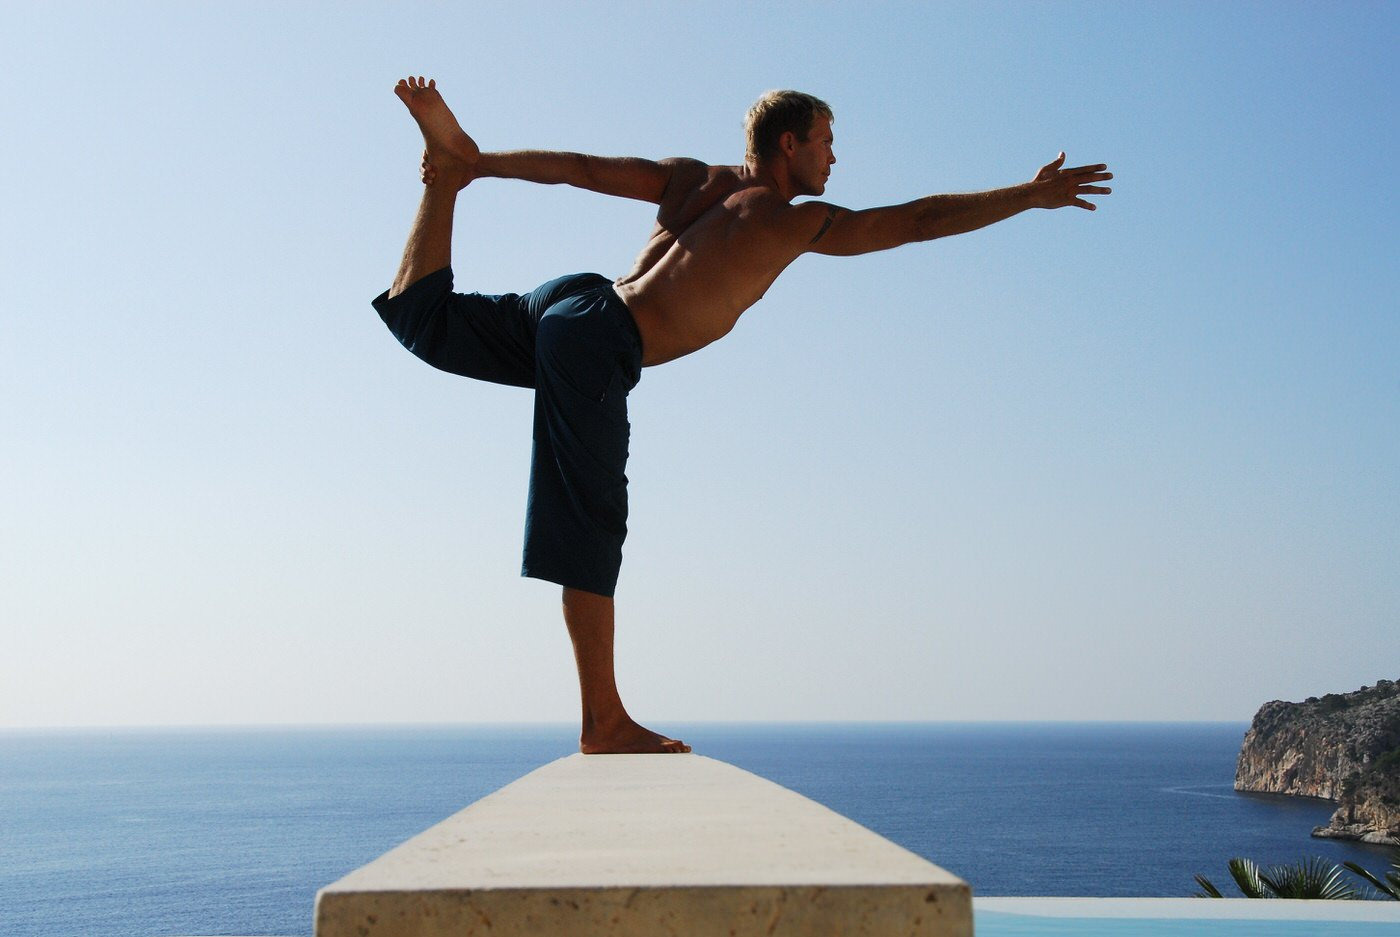 Personaltraining & Yoga in Mallorca with Frank-André Berkel